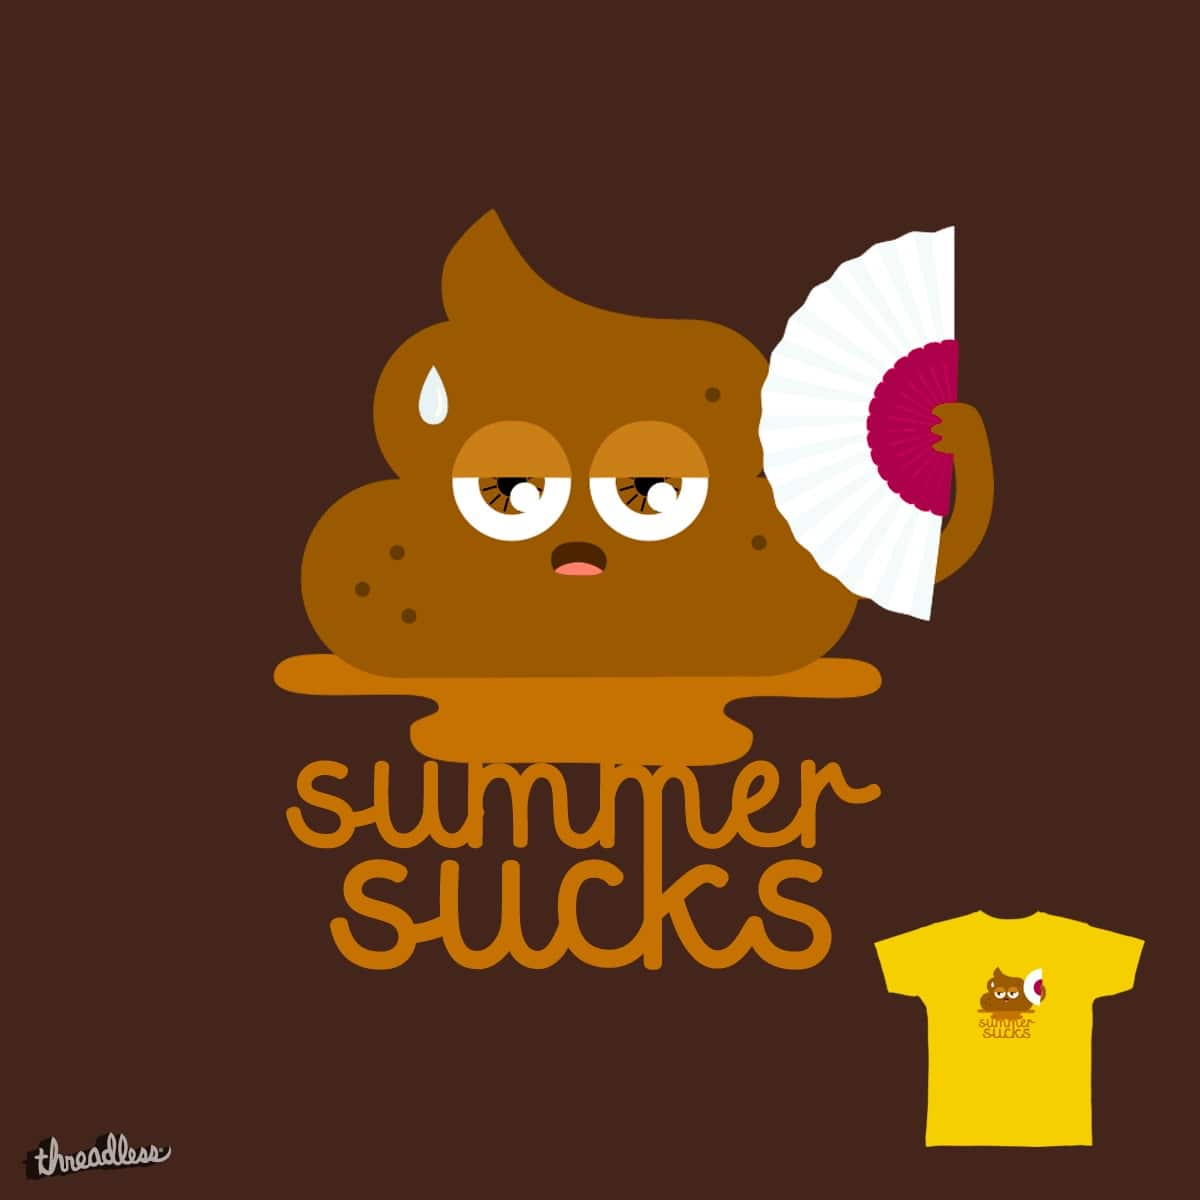 Summer Sucks by fran.solo on Threadless